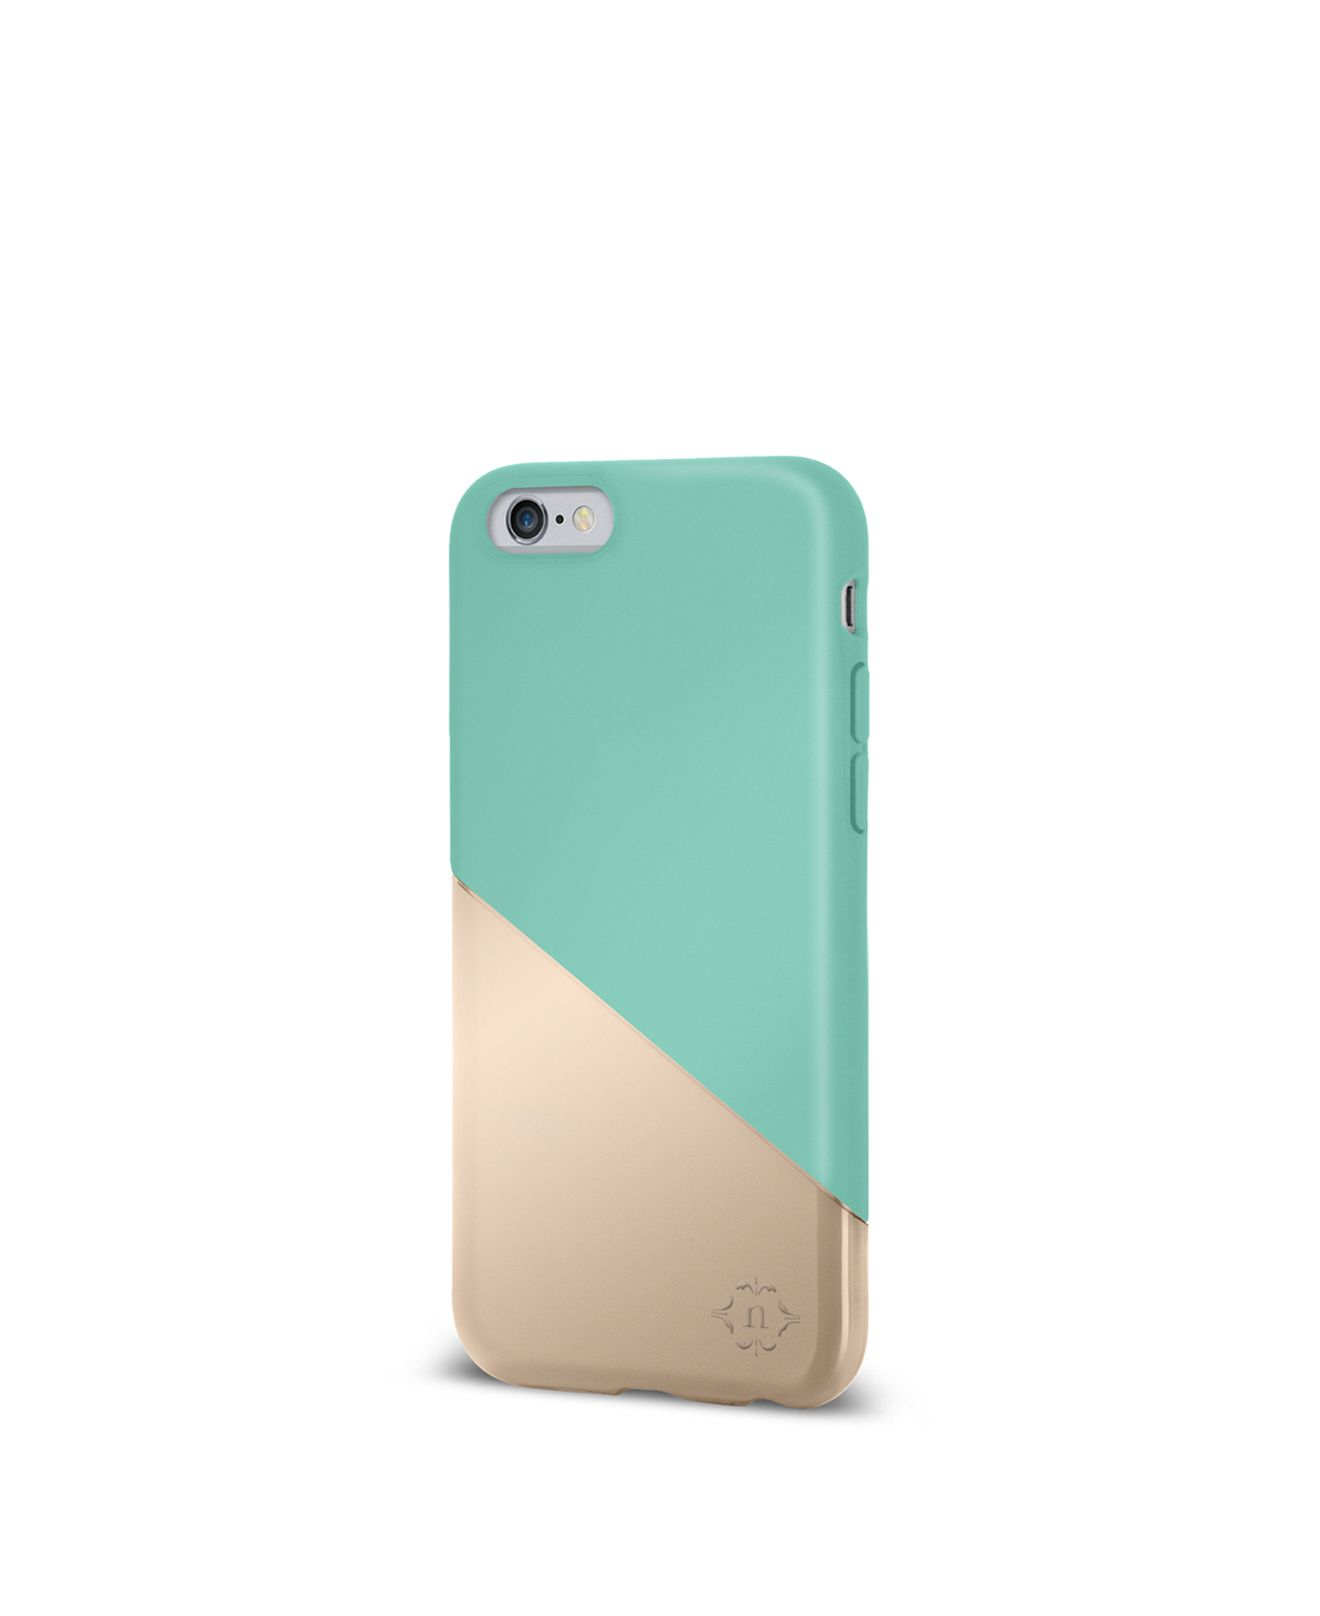 size 40 705ab 37dc6 Nanette Lepore Two-tone Iphone 6s Phone Case - Compare At $20 in ...